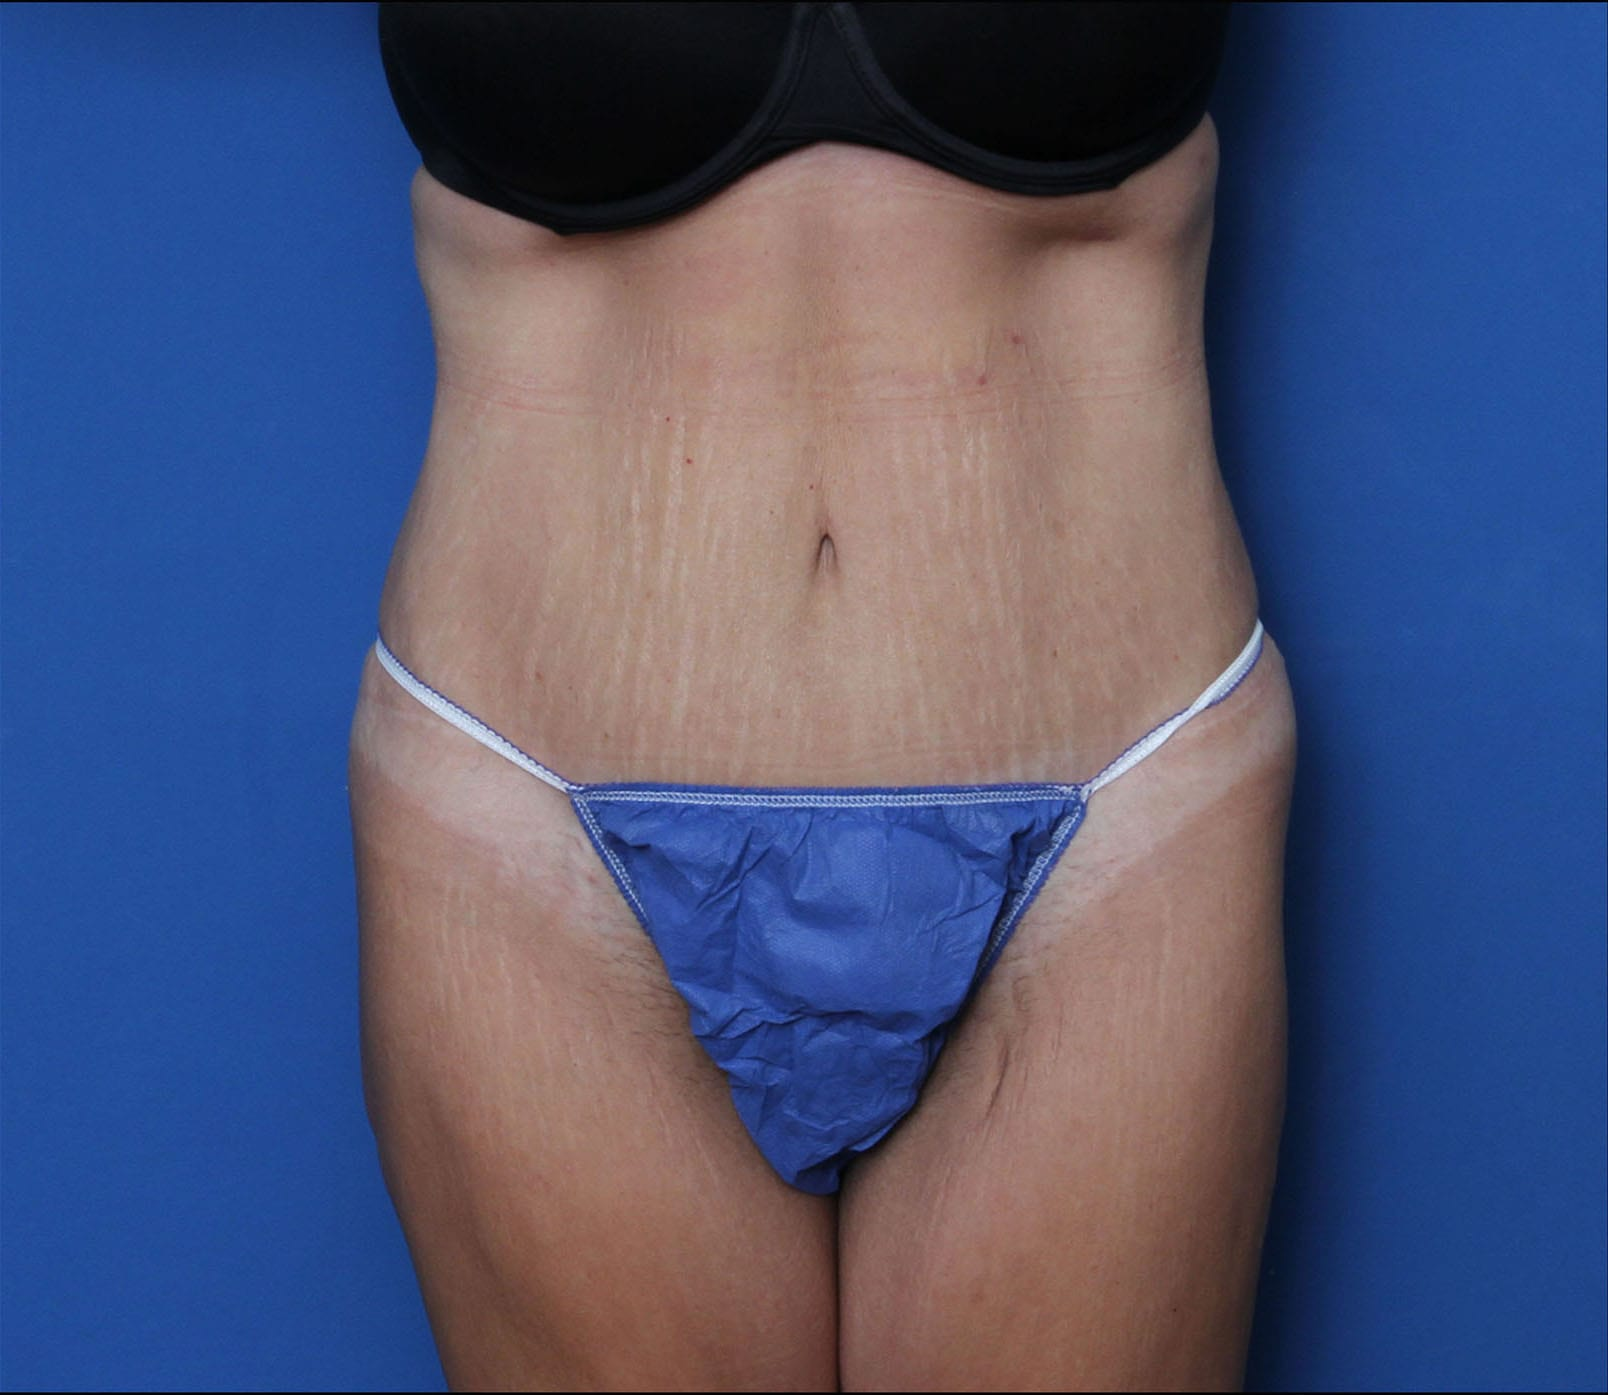 Tummy Tuck Patient Photo - Case 9773 - after view